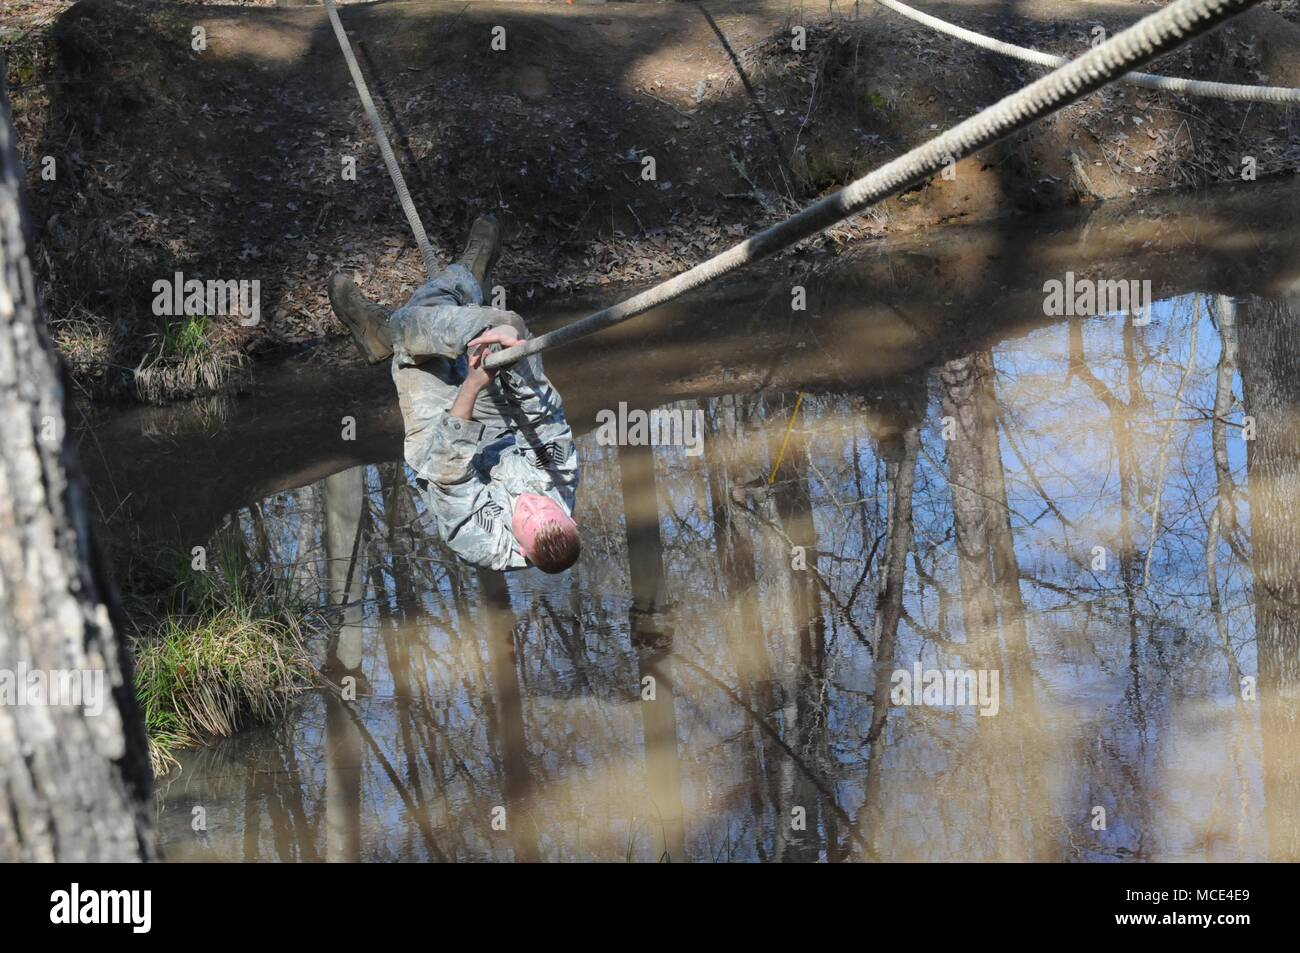 Tech Sgt. Thomas Rushing, of the 186th Air Refueling Wing in Meridian, Miss., crosses a rope bridge during the confidence course portion of the Mississippi National Guard 2018 Best Warrior Competition at the Camp McCain Training Center near Elliott, Miss., Feb. 27, 2018. (U.S. National Guard photo by Chelsy Ables) - Stock Image